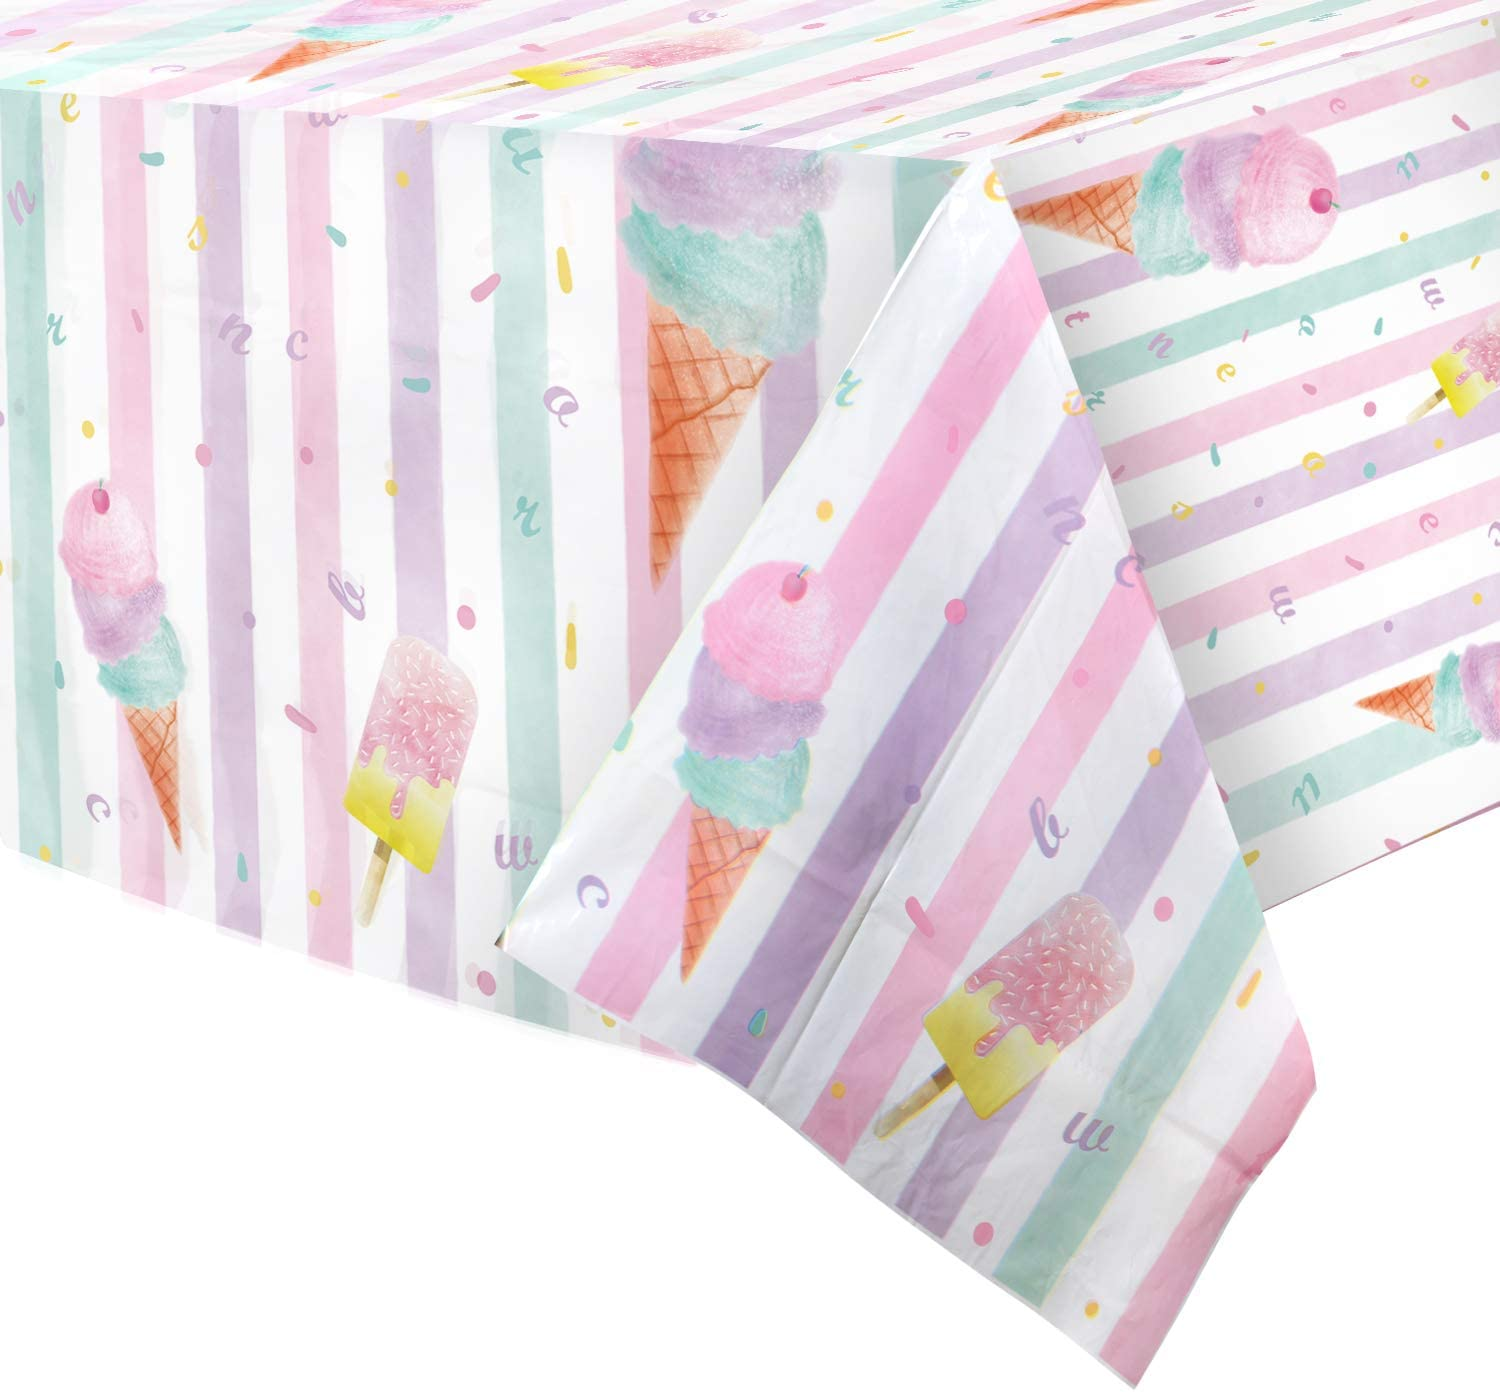 Details about  /Sunny Day Birthday Party Supplies Napkins,Table Cover /& 7pcs Decor.!!